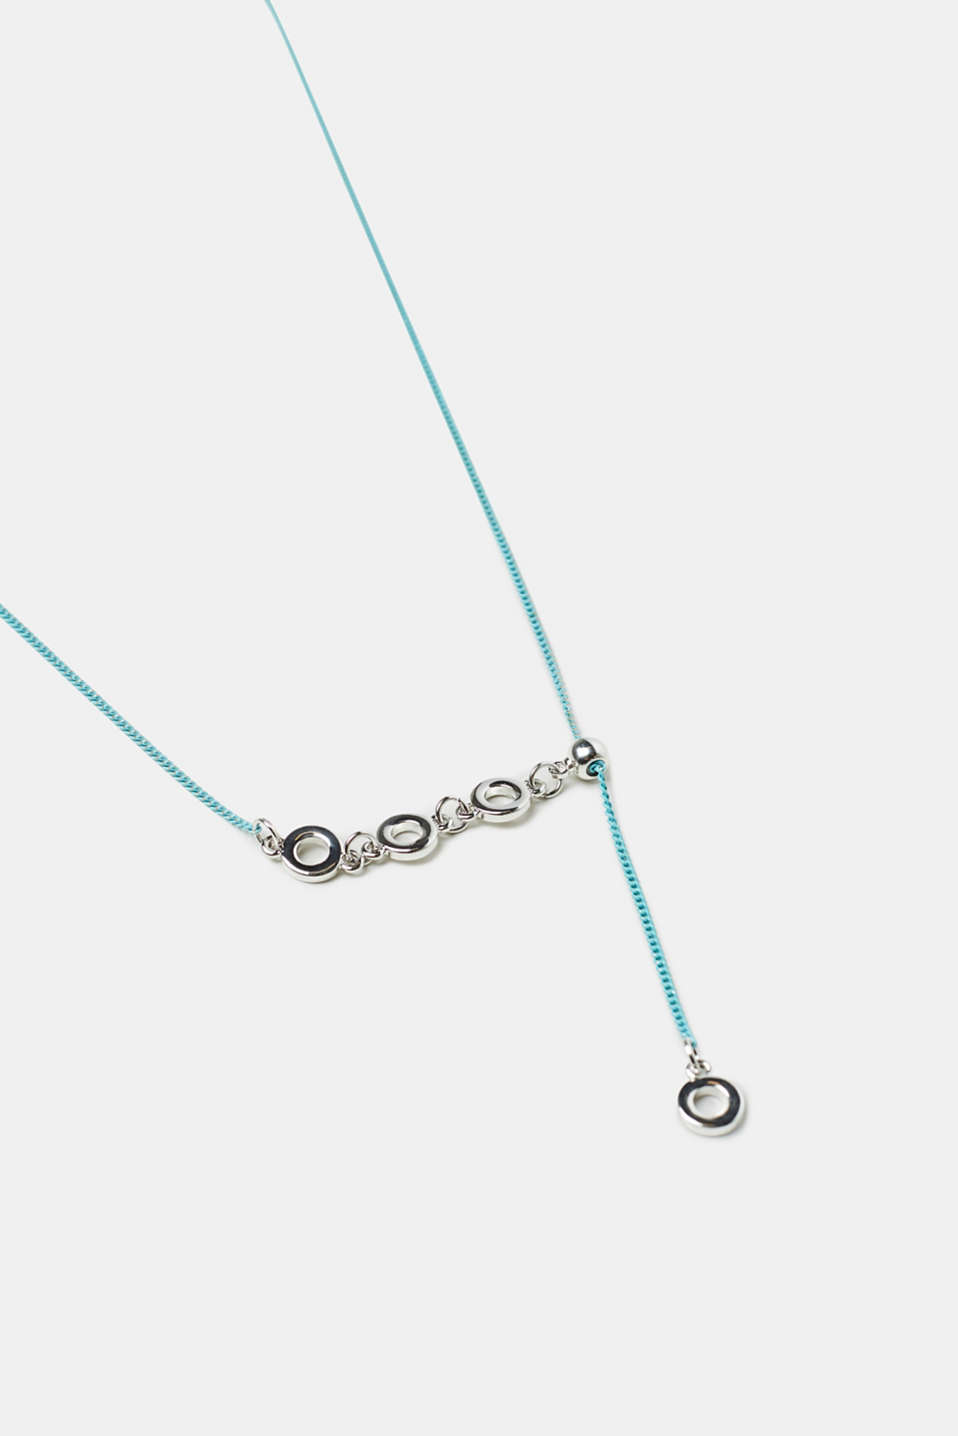 Pendulum necklace with four metal rings